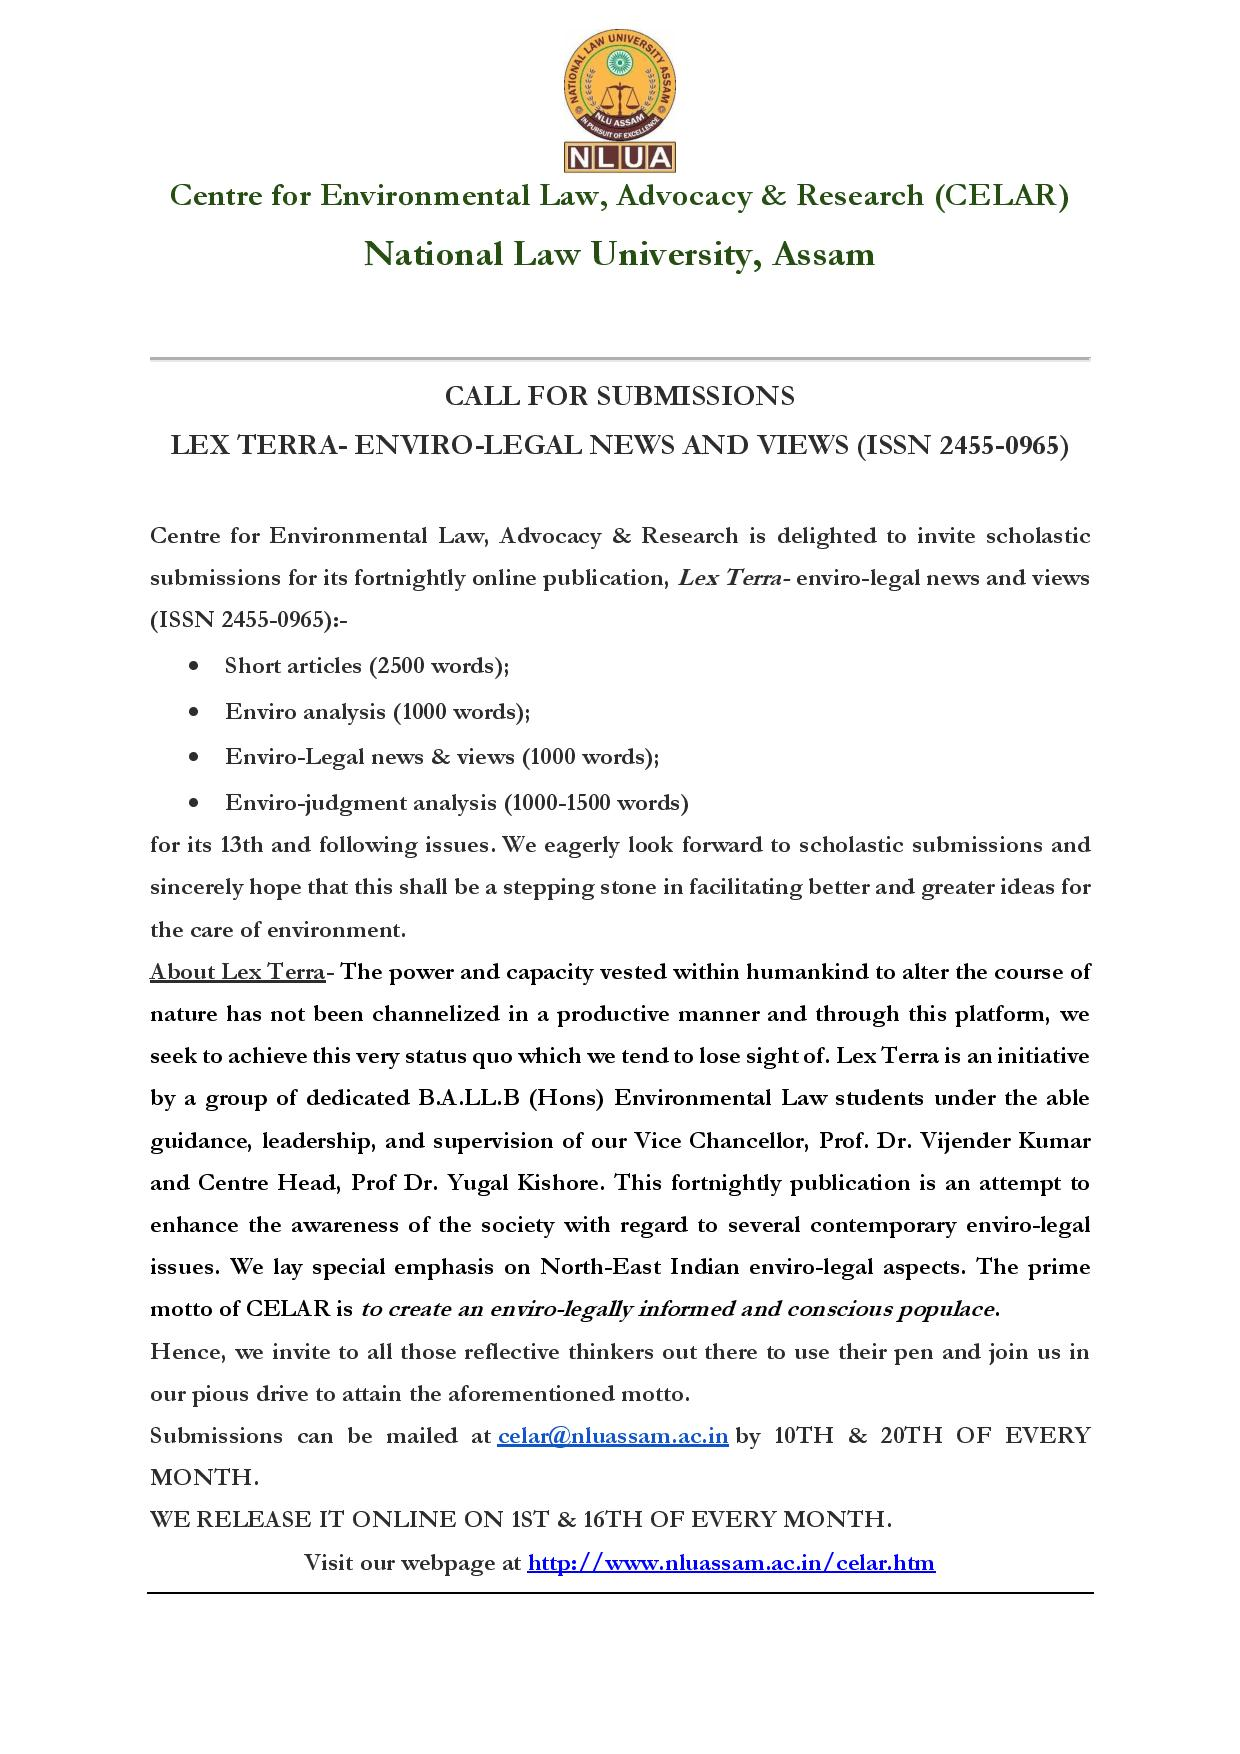 Call for Papers: NLU Assam's Lex Terra [Enviro-Legal News and Views]